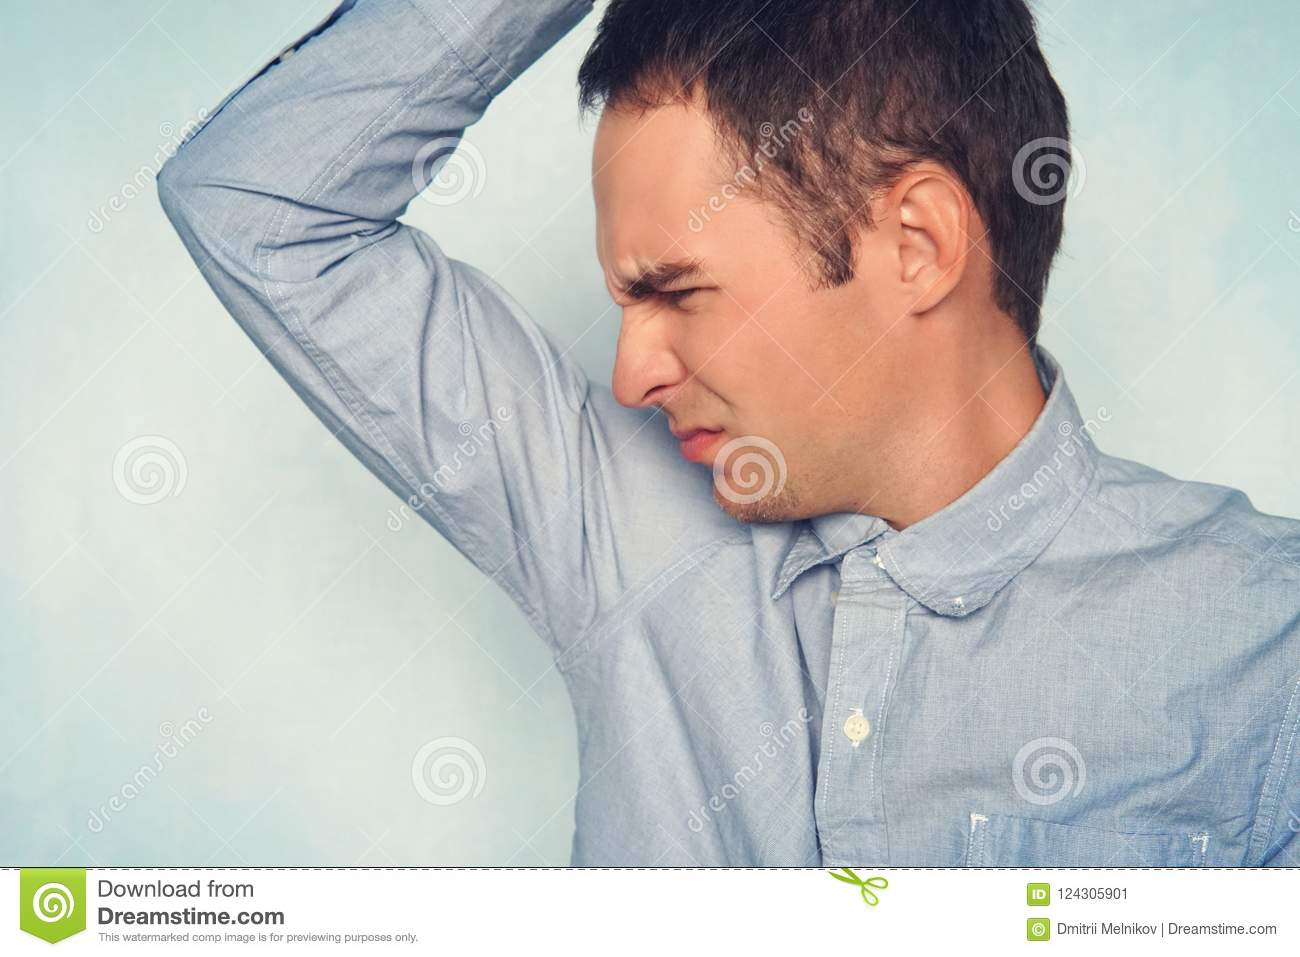 business man with sweating under armpit in blue shirt young guy